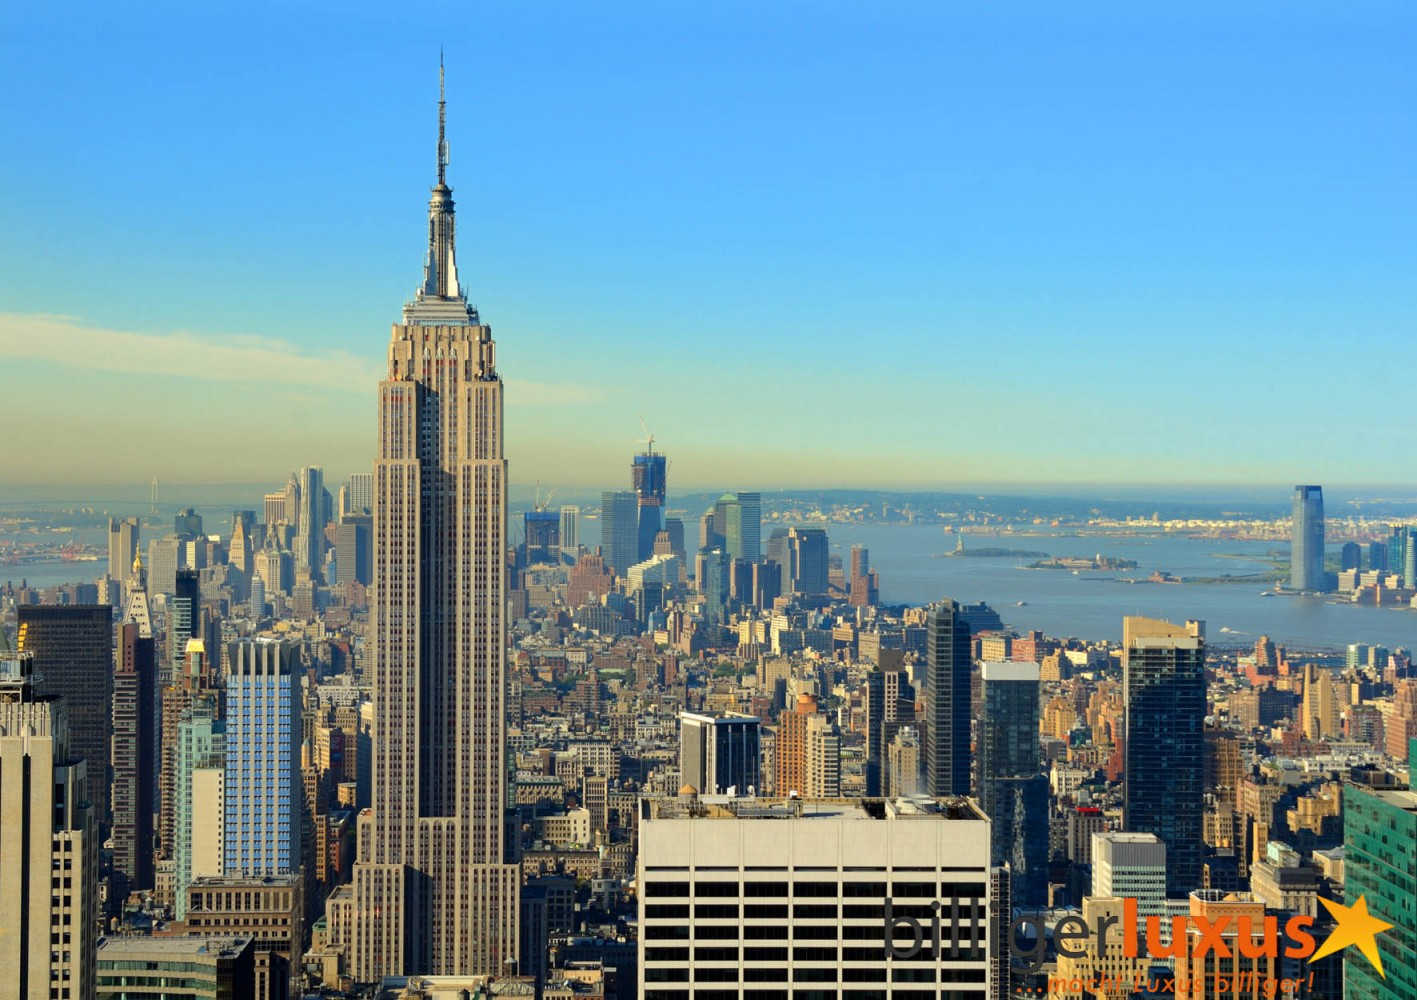 Wall Mural Wallpaper New York Skyline Empire State Building Photo 360 Cm X  254 Cm / 3.94 Yd X 2.78 Yd Part 54